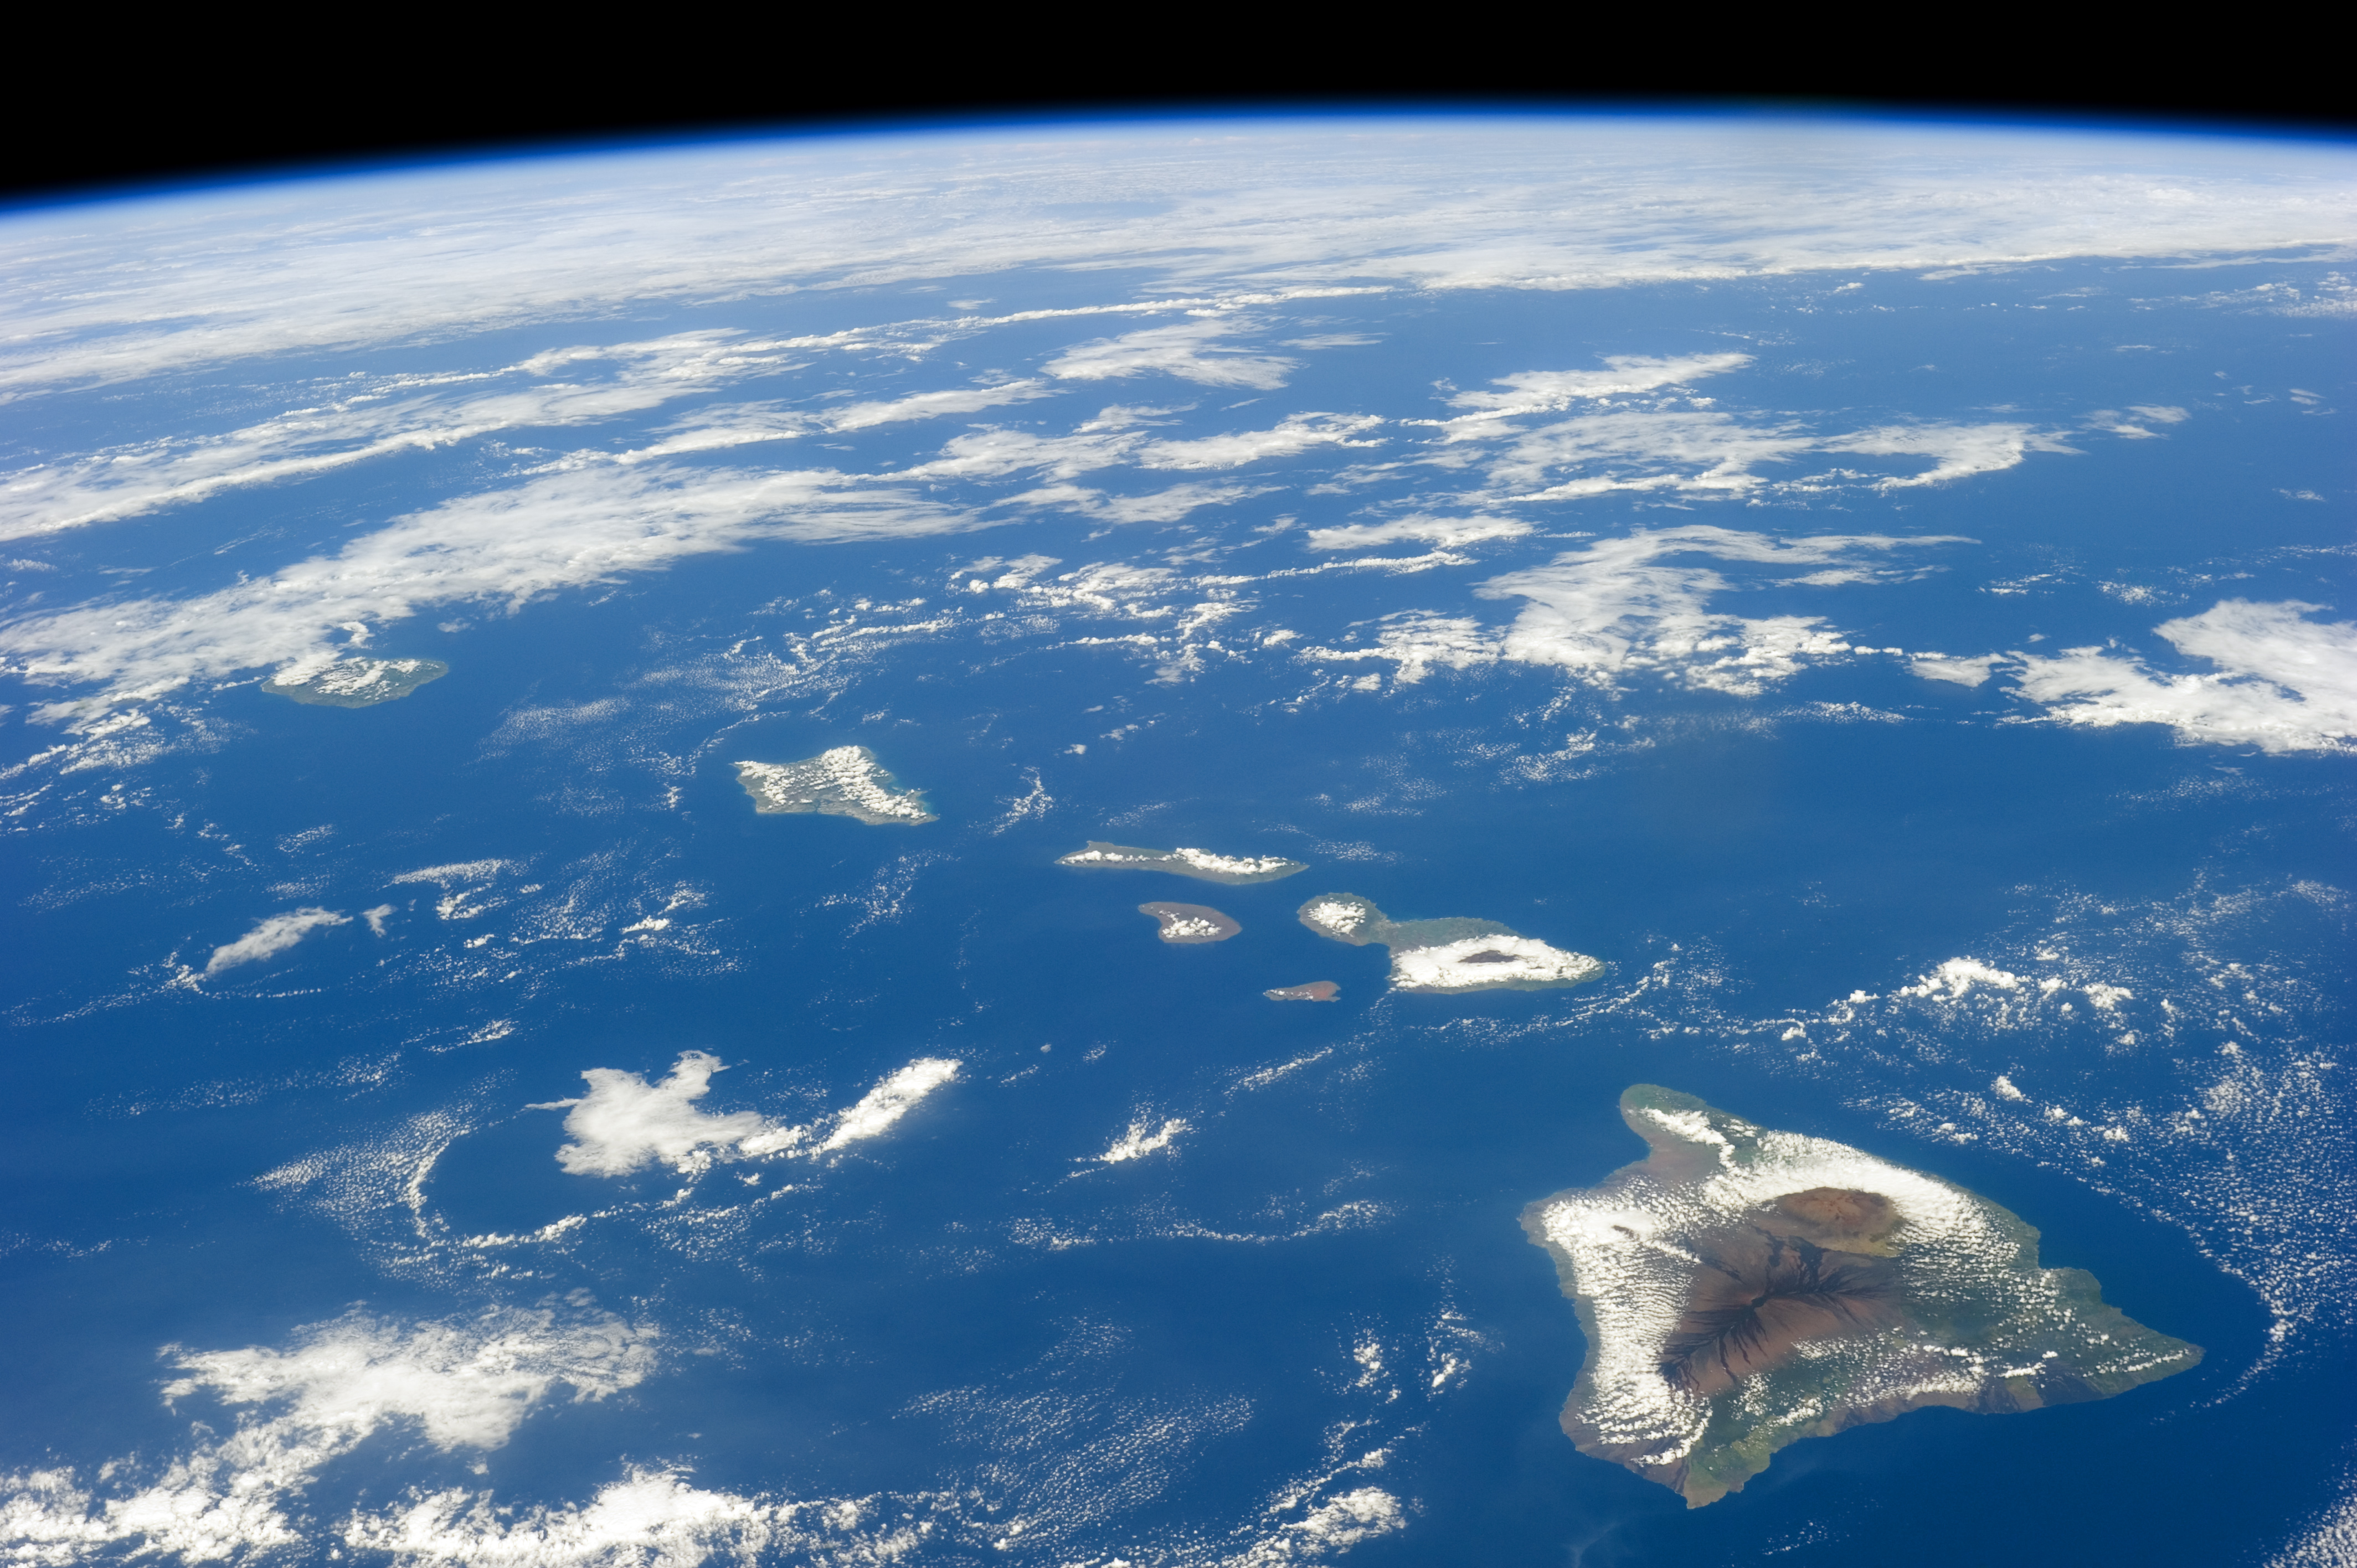 The Hawaiian archipelago from outer space